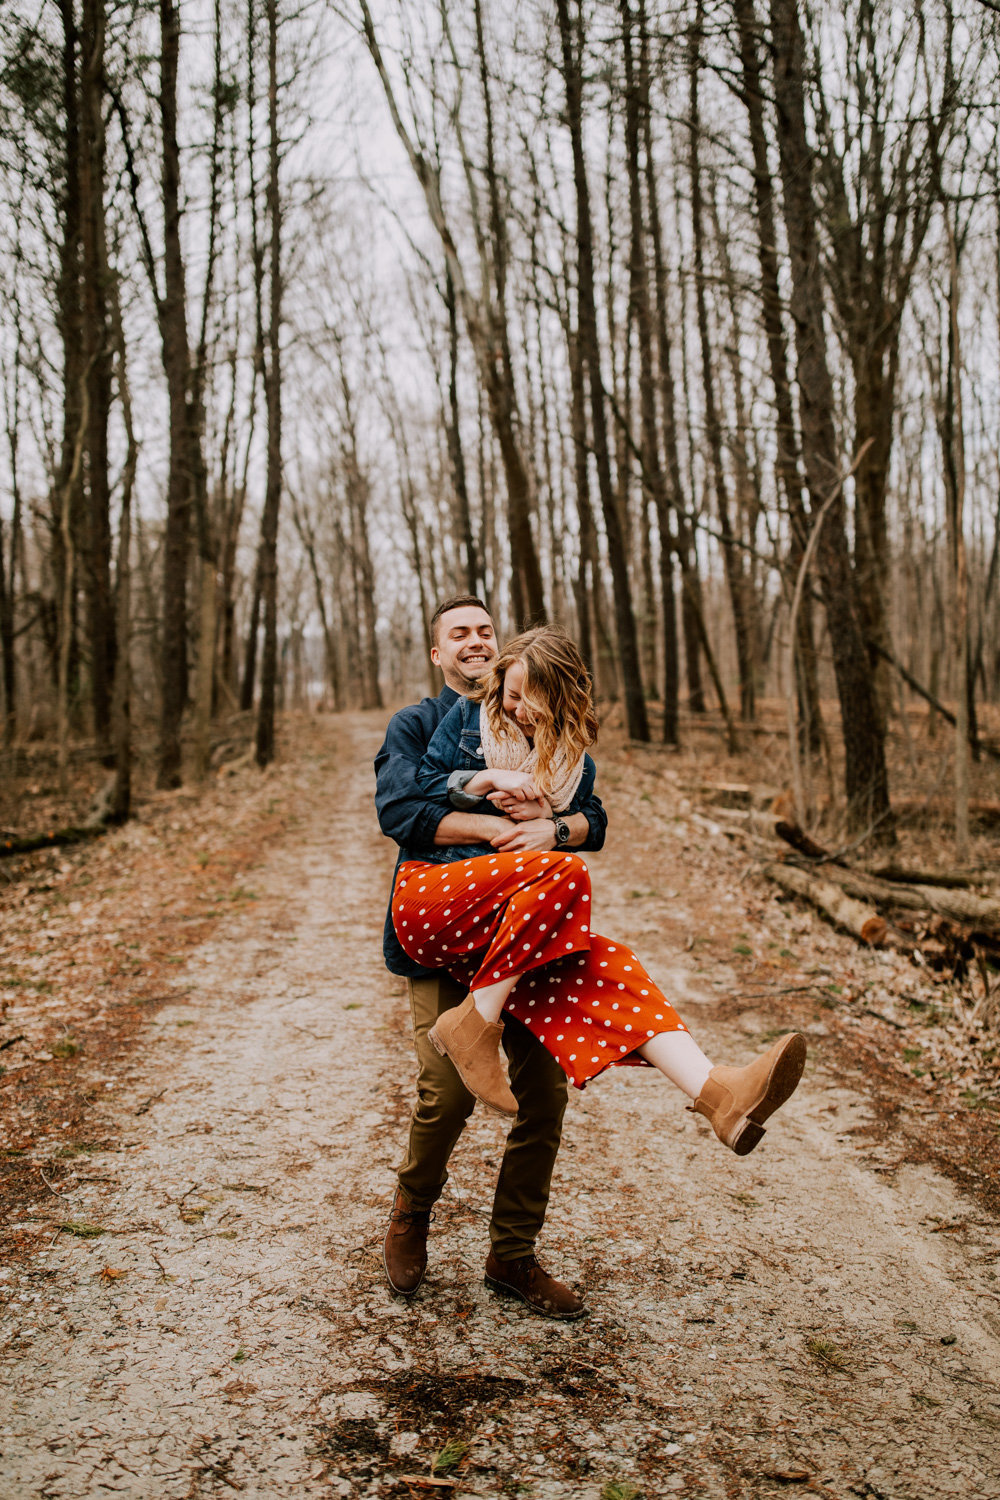 Windy-engagement-session-eagle-creek-state-park-22